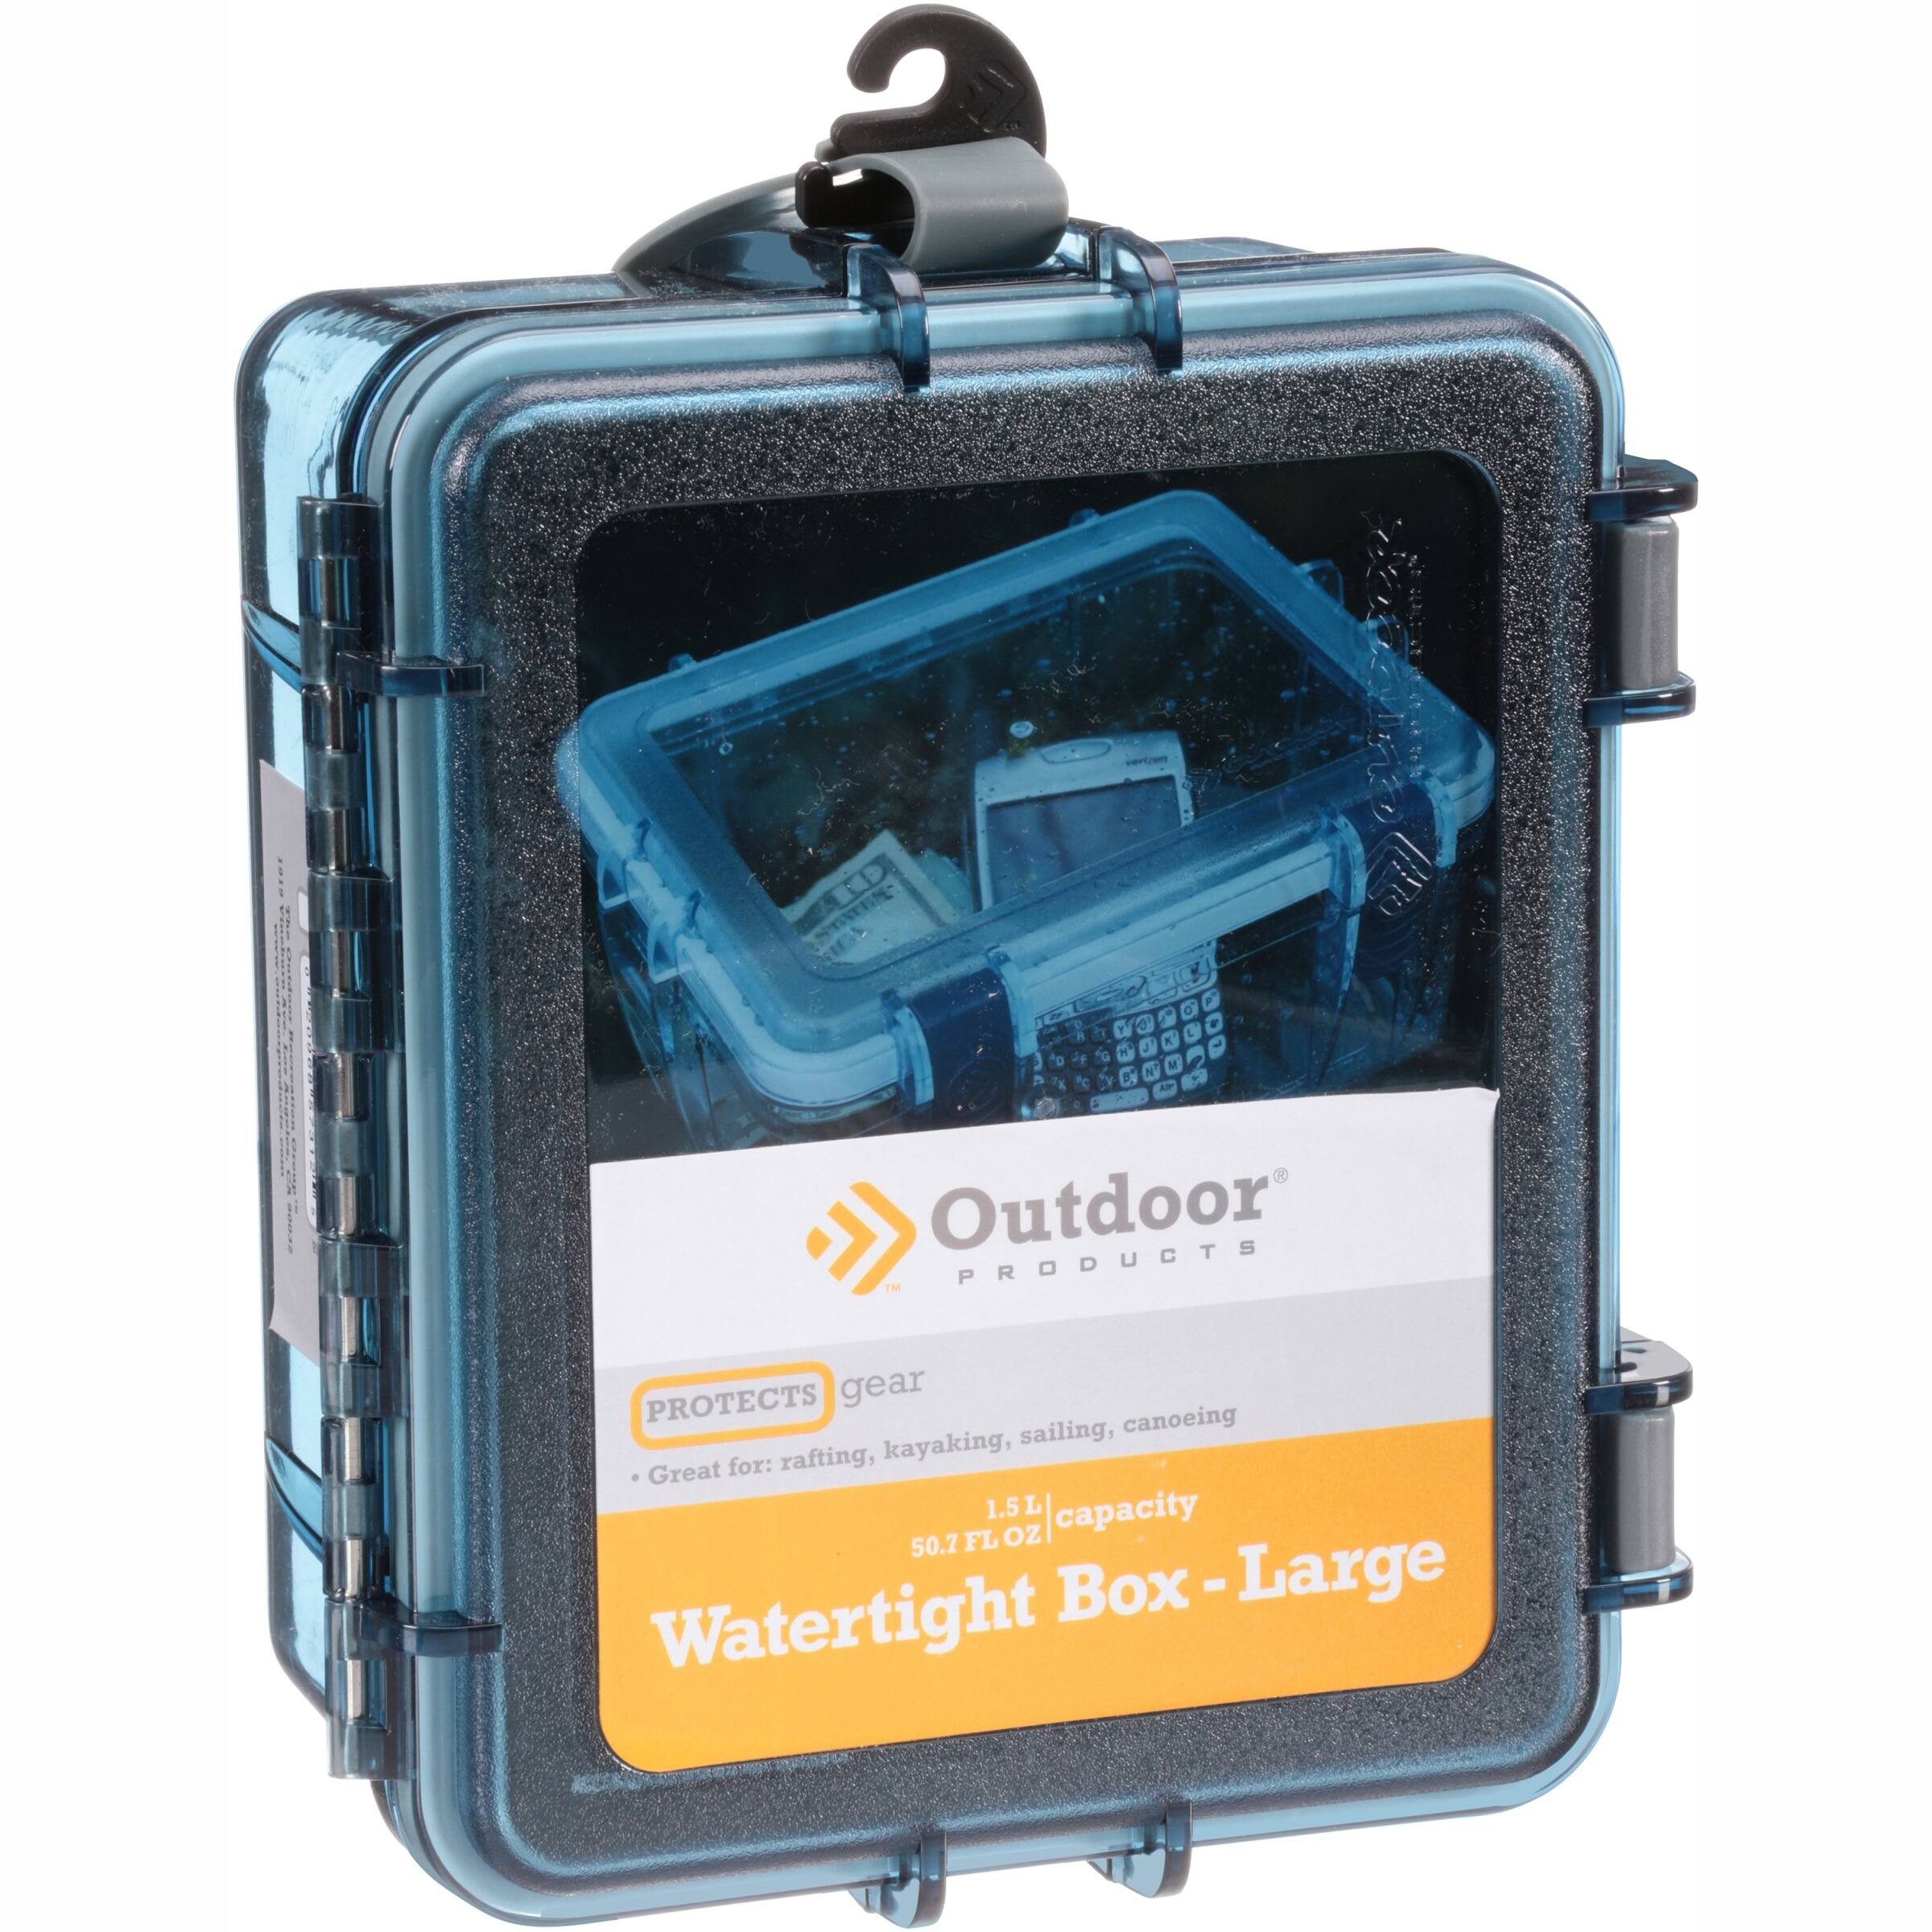 Outdoor Products® Large Watertight Box $7